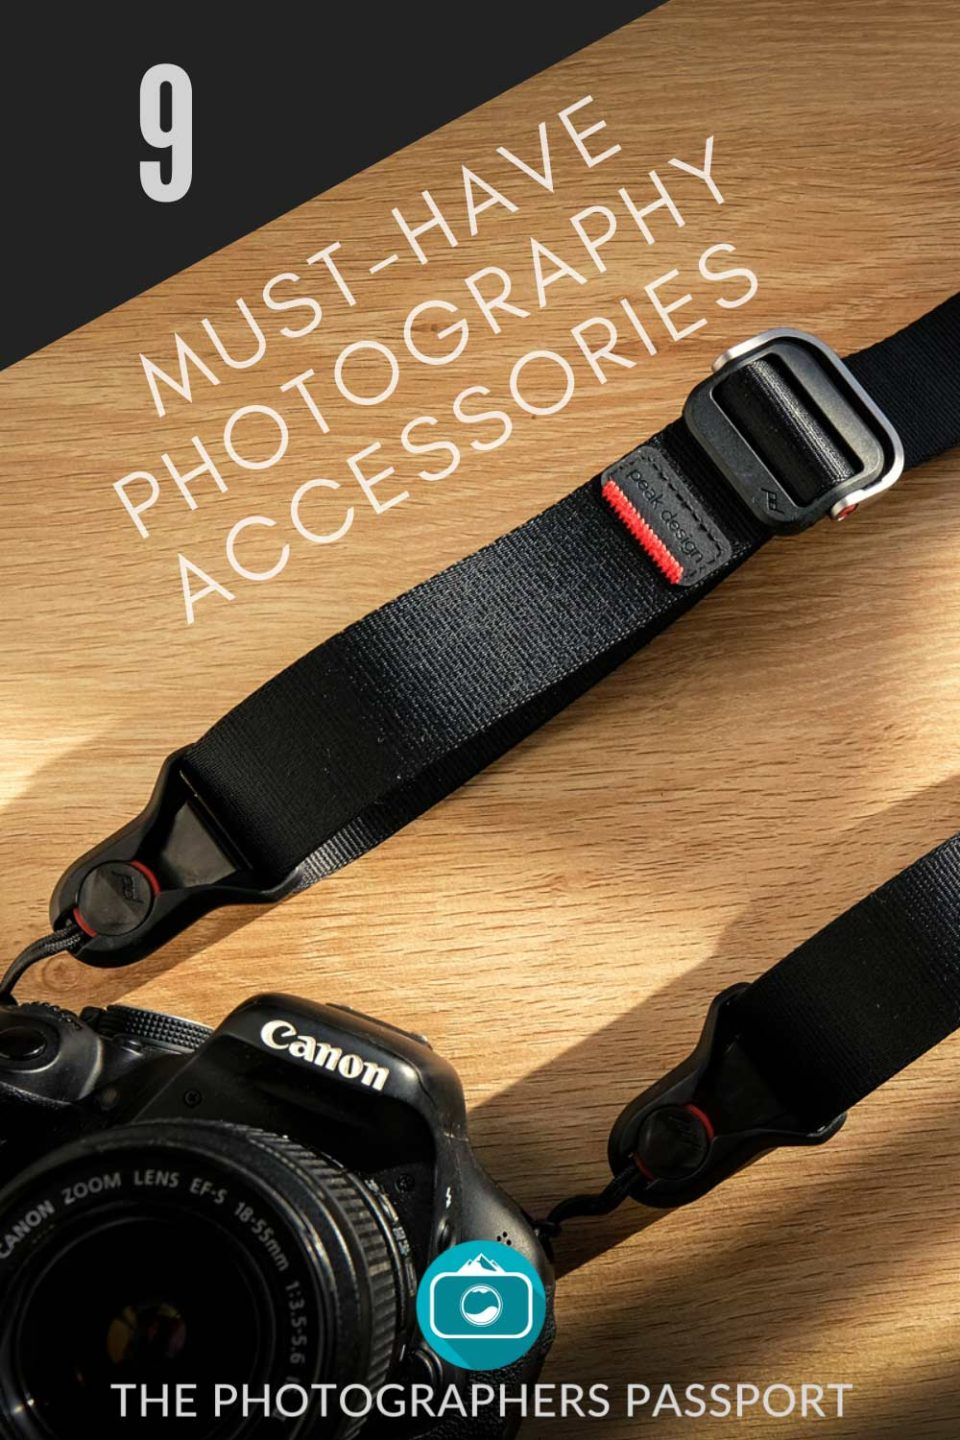 Are you looking to improve your travel photography? Well with my list of 9 must-have photography accessories you can make that a reality! Click here to find out more.